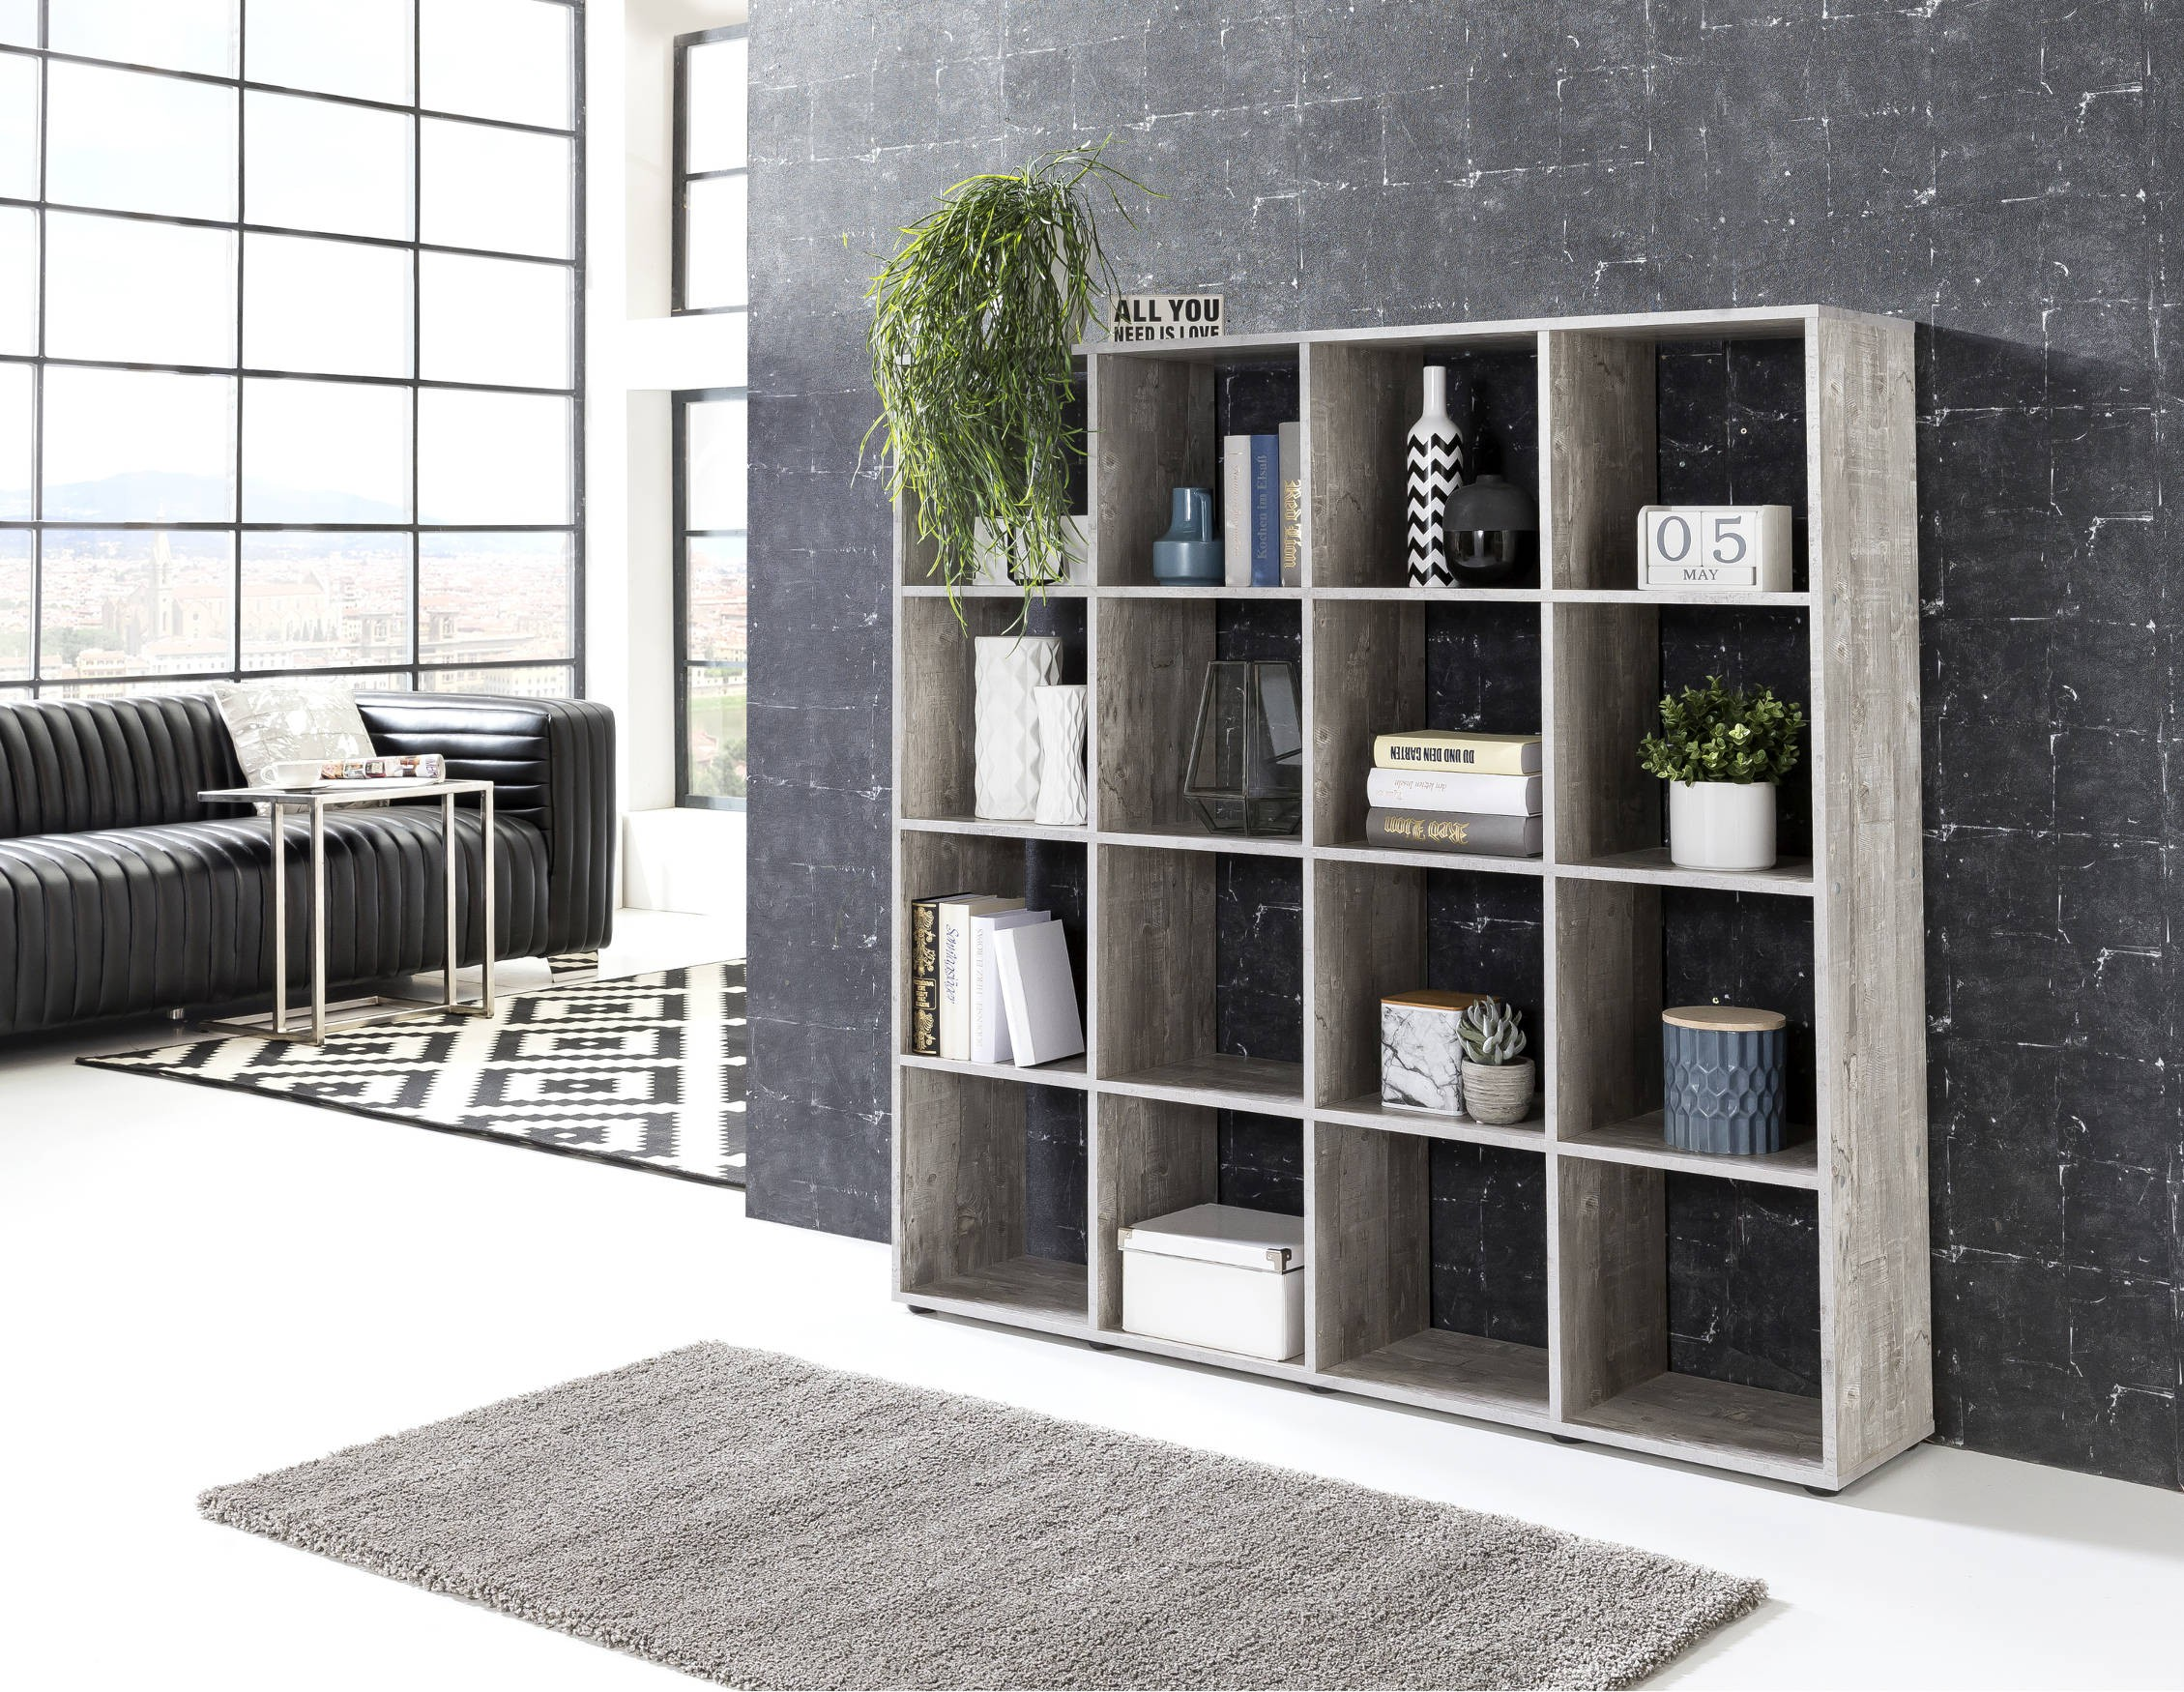 regal maik w rfelsystem 16 f cher beton grau wohnen. Black Bedroom Furniture Sets. Home Design Ideas